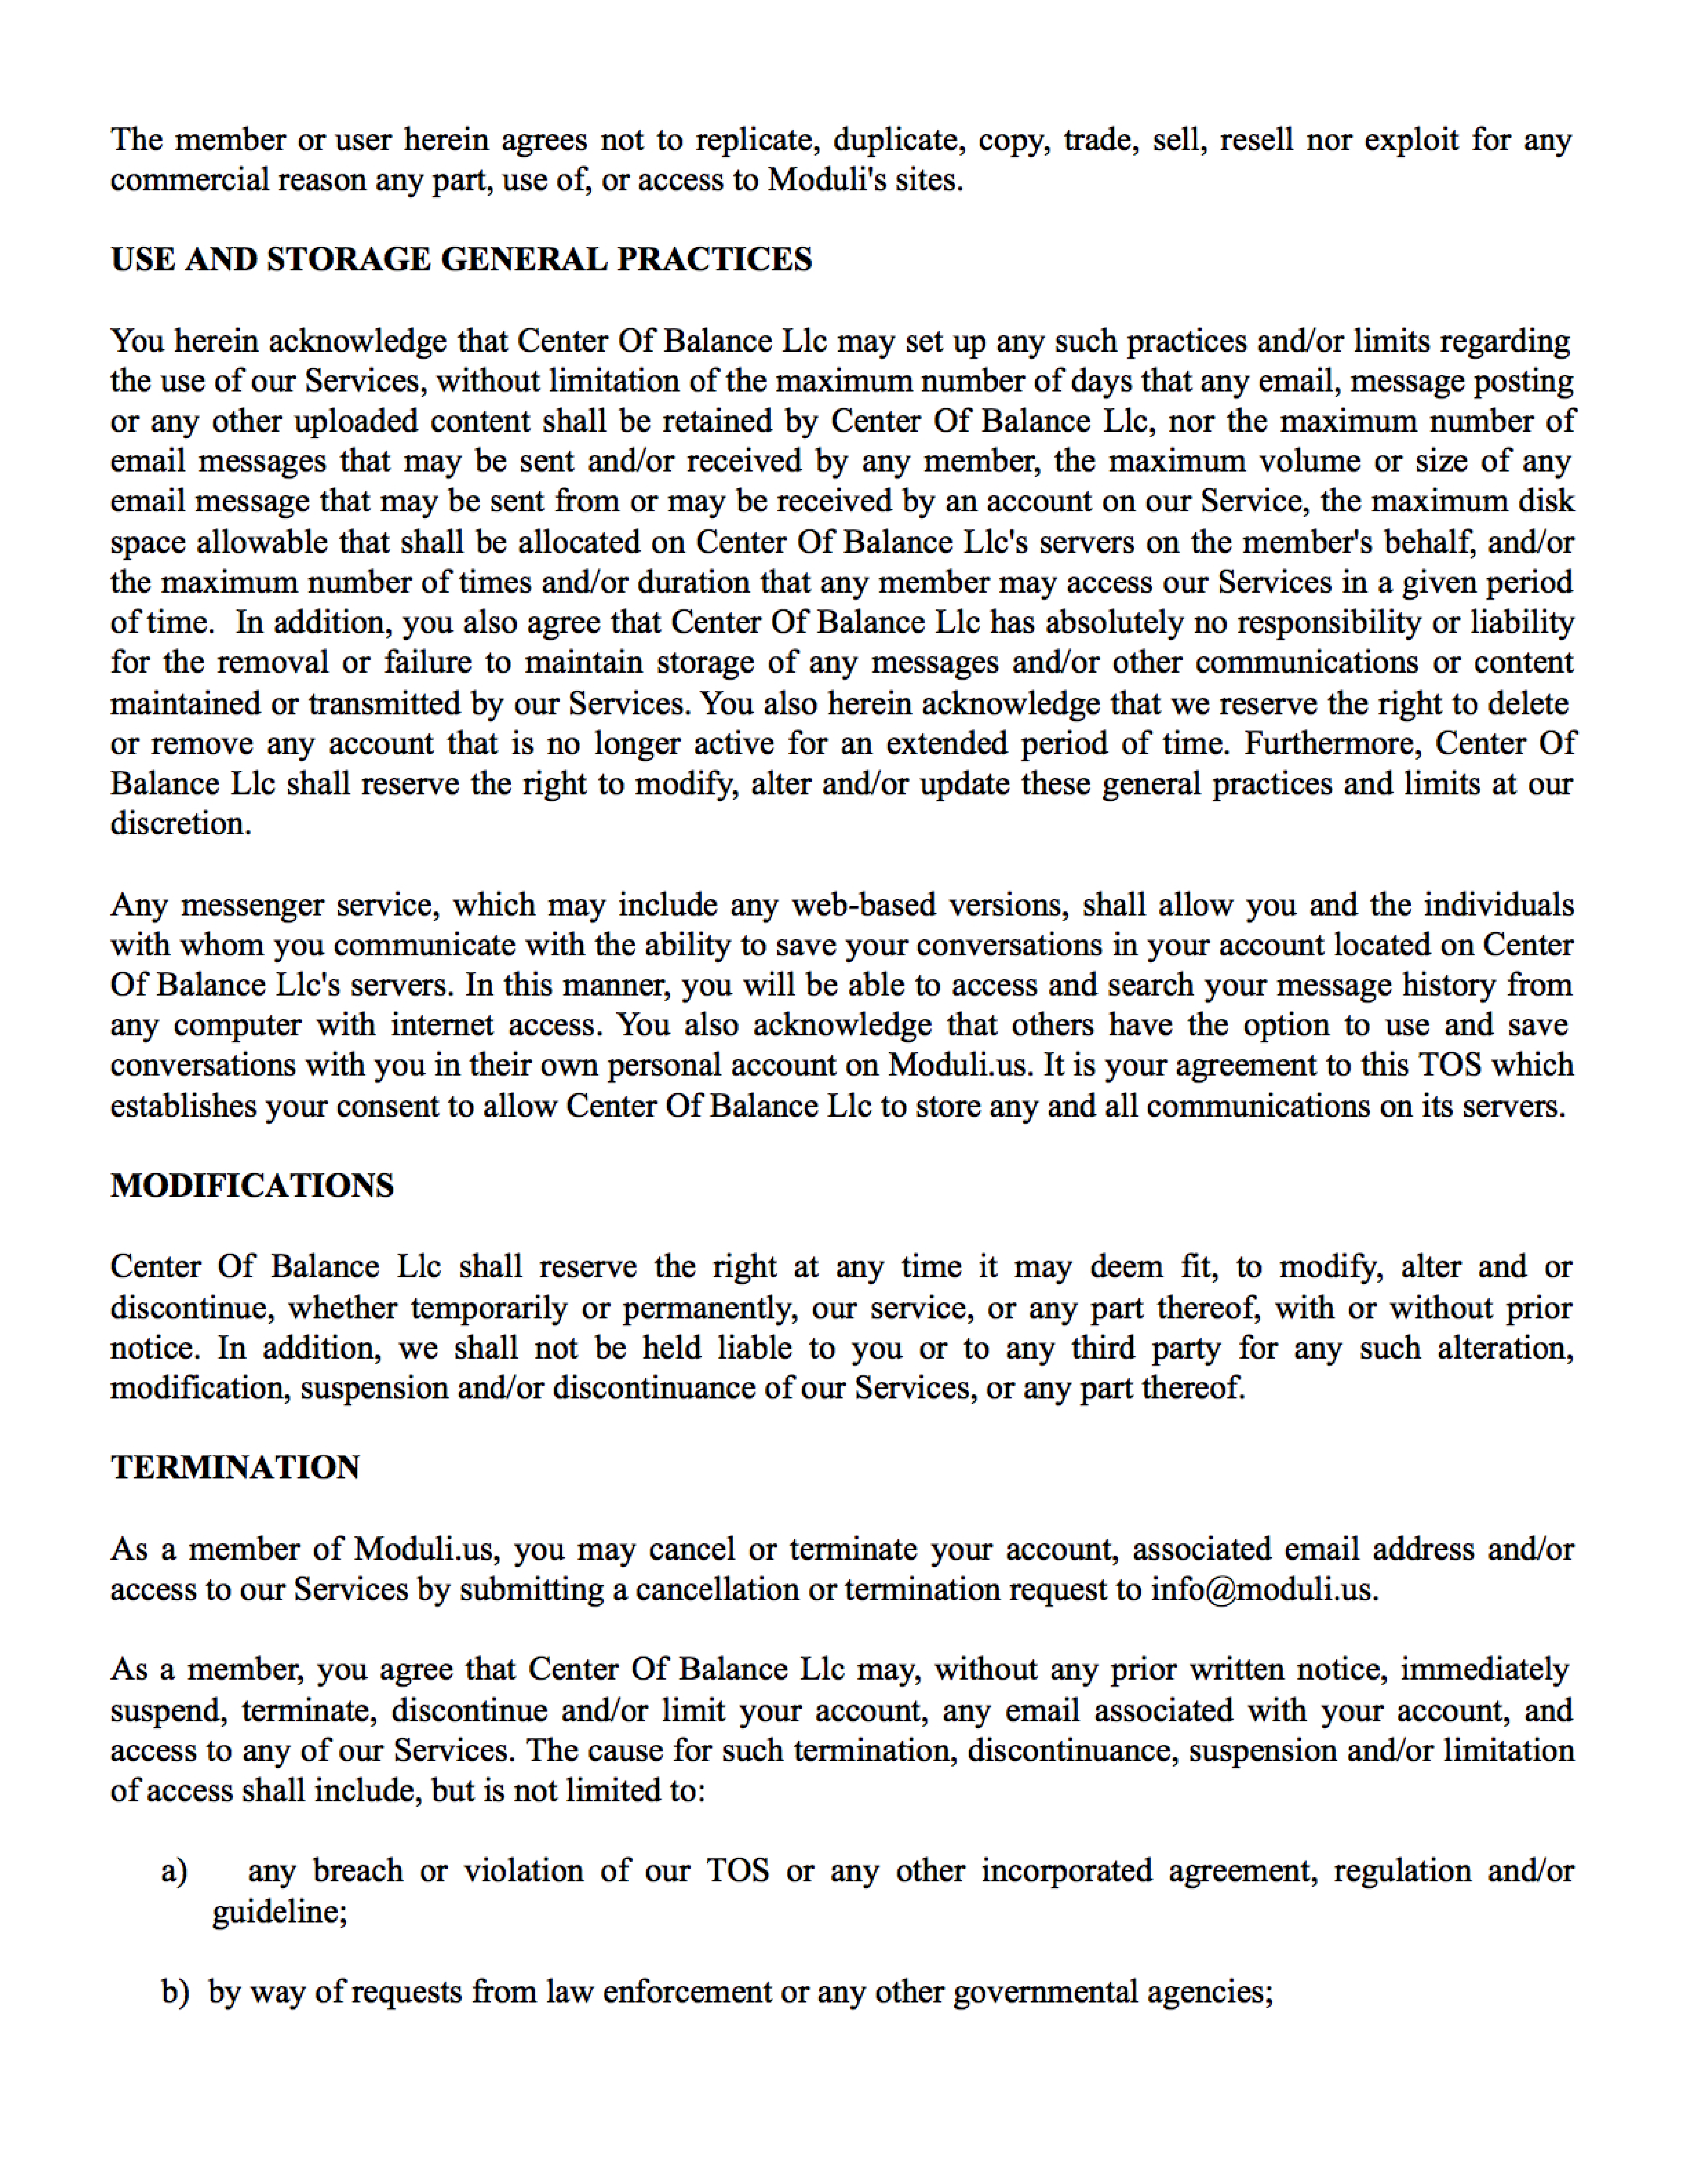 terms-and-conditions-b-page-07.png